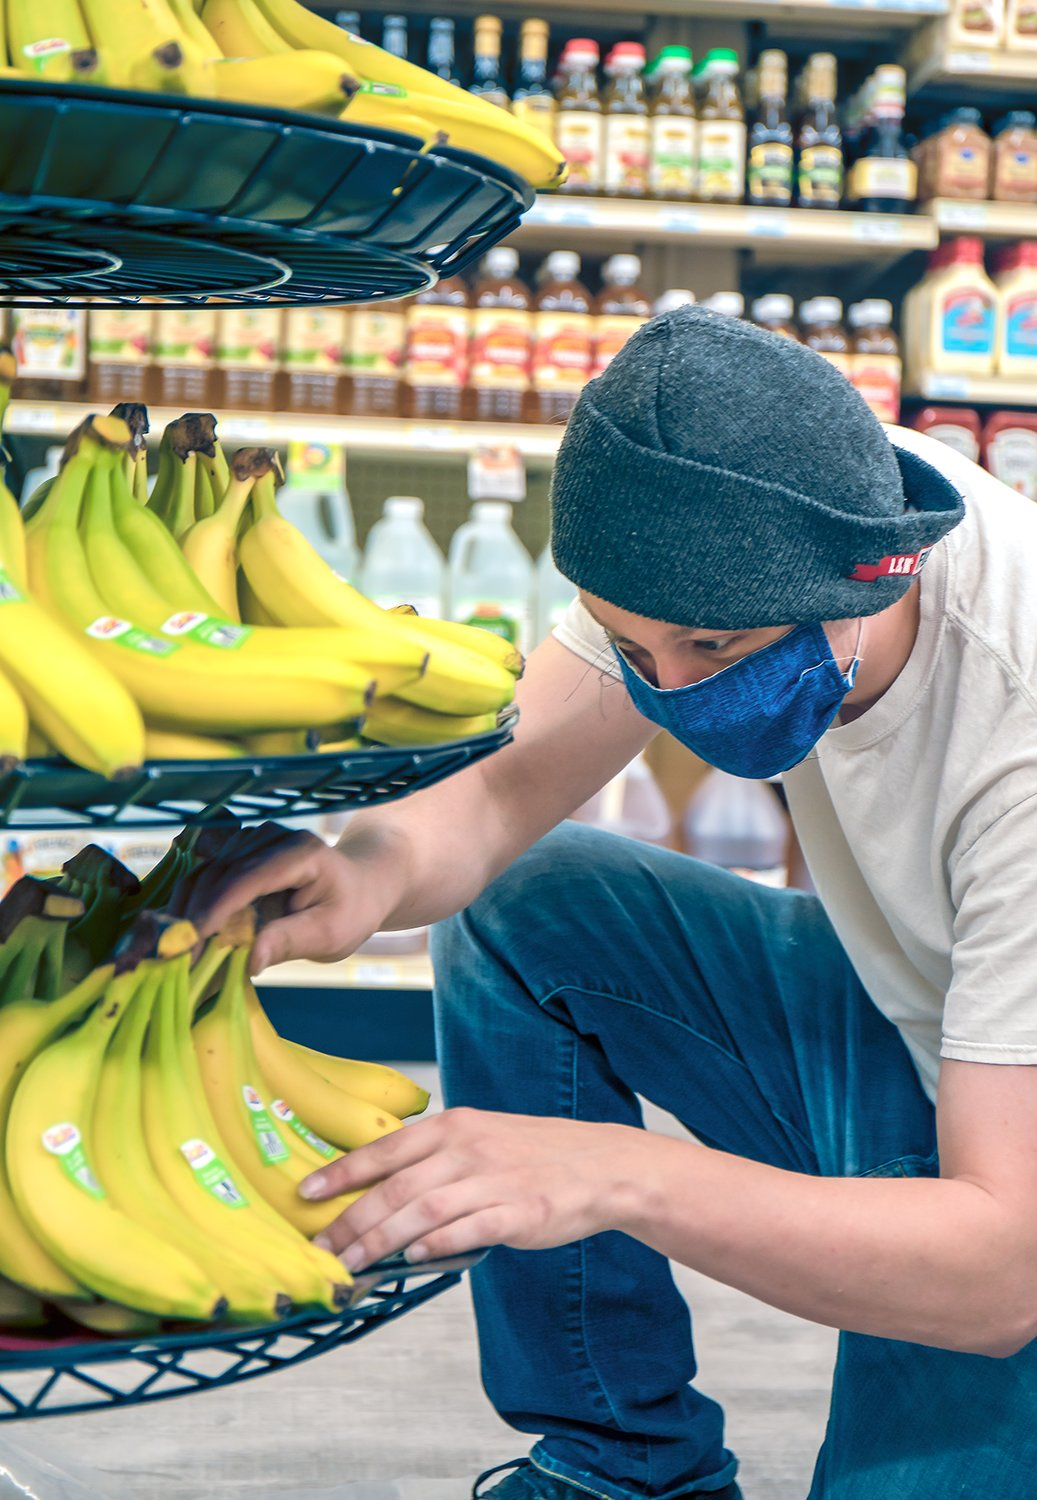 Shortly after the Cook Zup's opened at 7 a.m. on Wednesday, Gage Koskovich puts the finishing touches on a display of bananas.